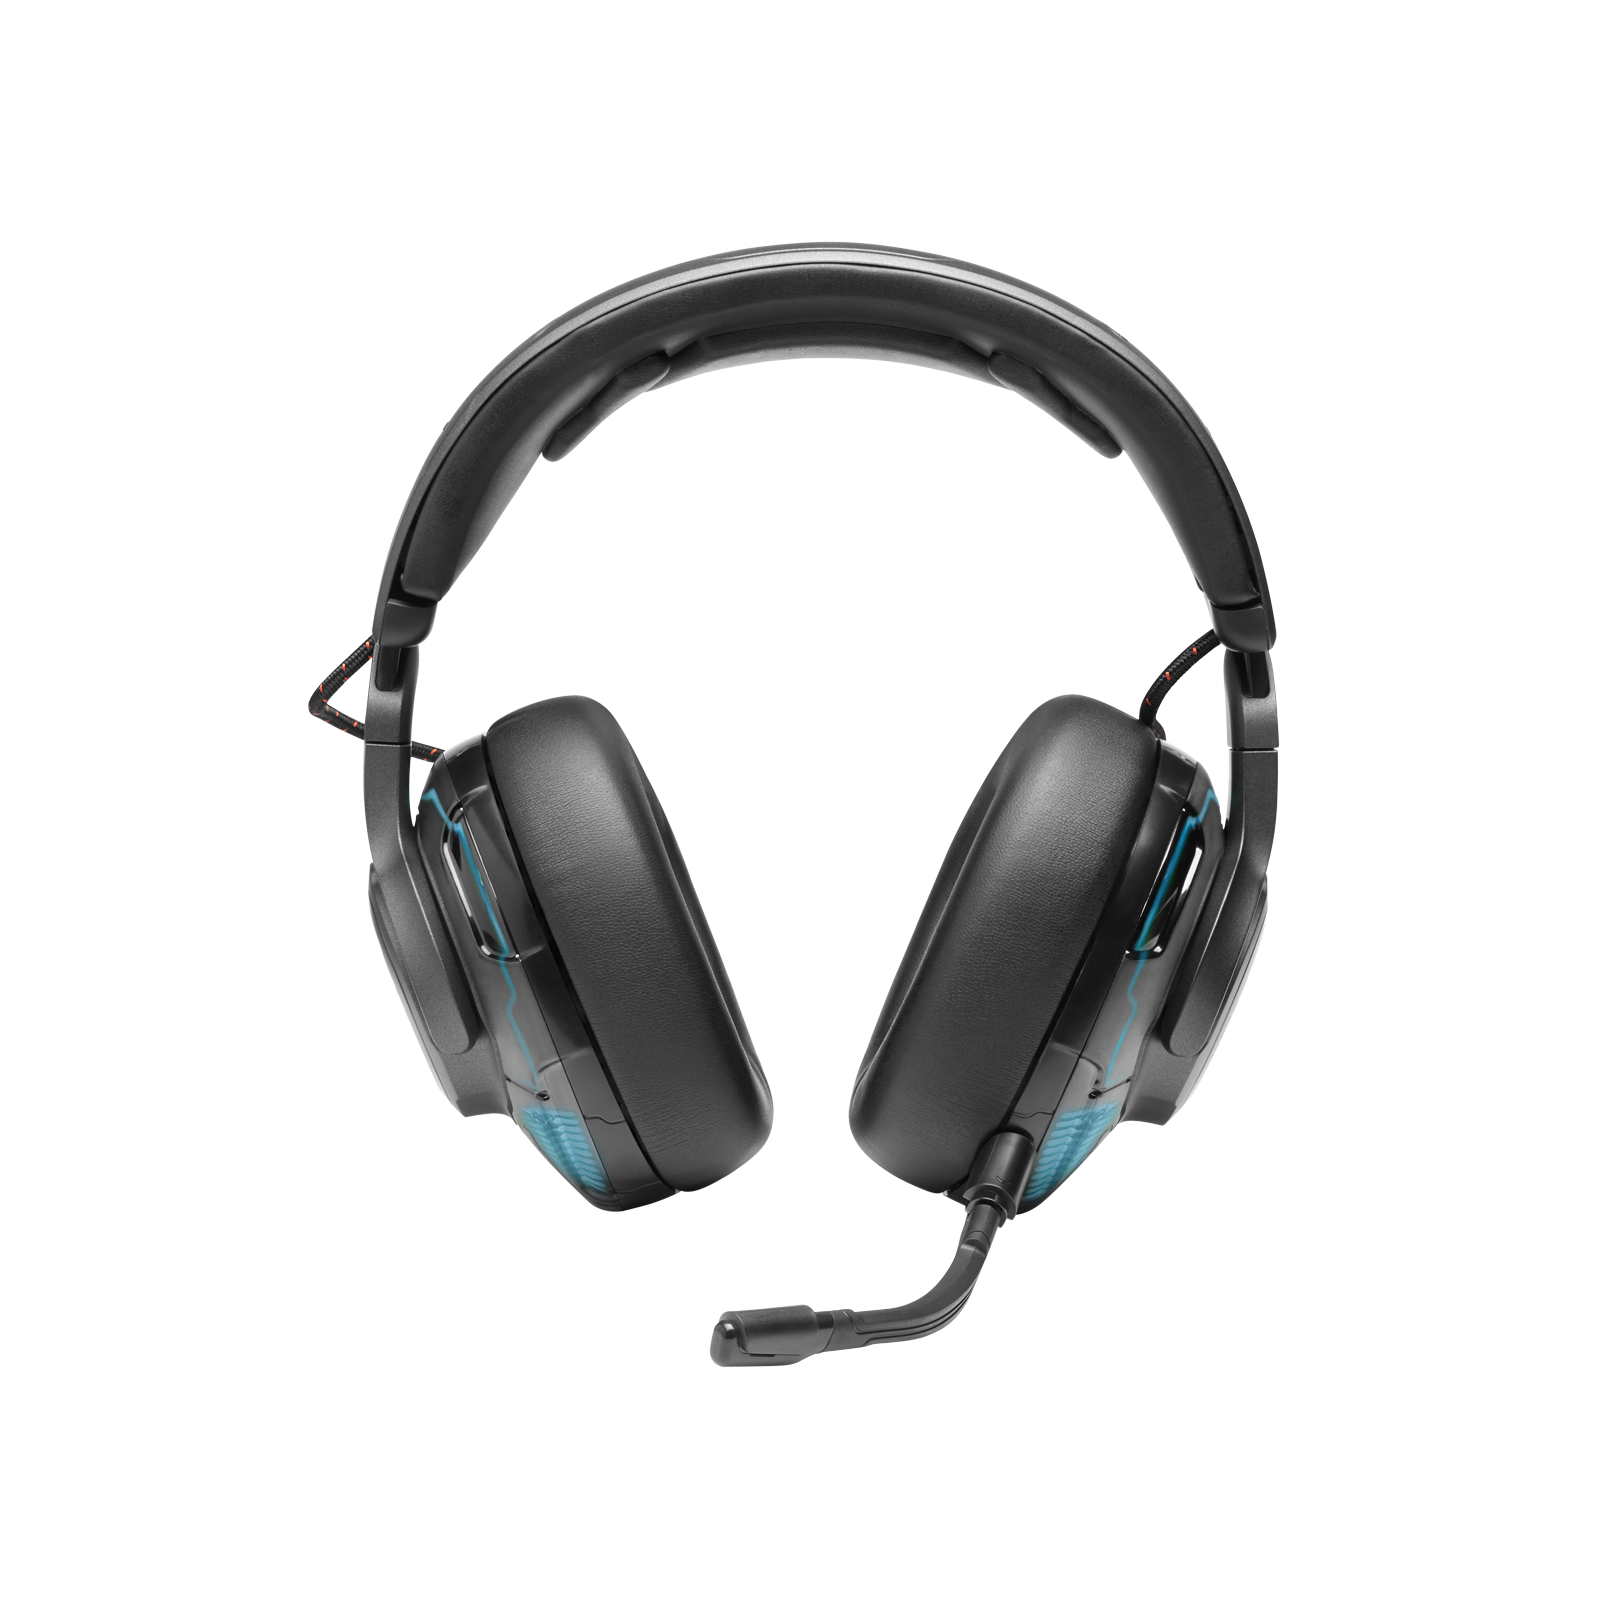 JBL Quantum ONE - Black - USB wired over-ear professional gaming headset with head-tracking enhanced JBL QuantumSPHERE 360 - Front